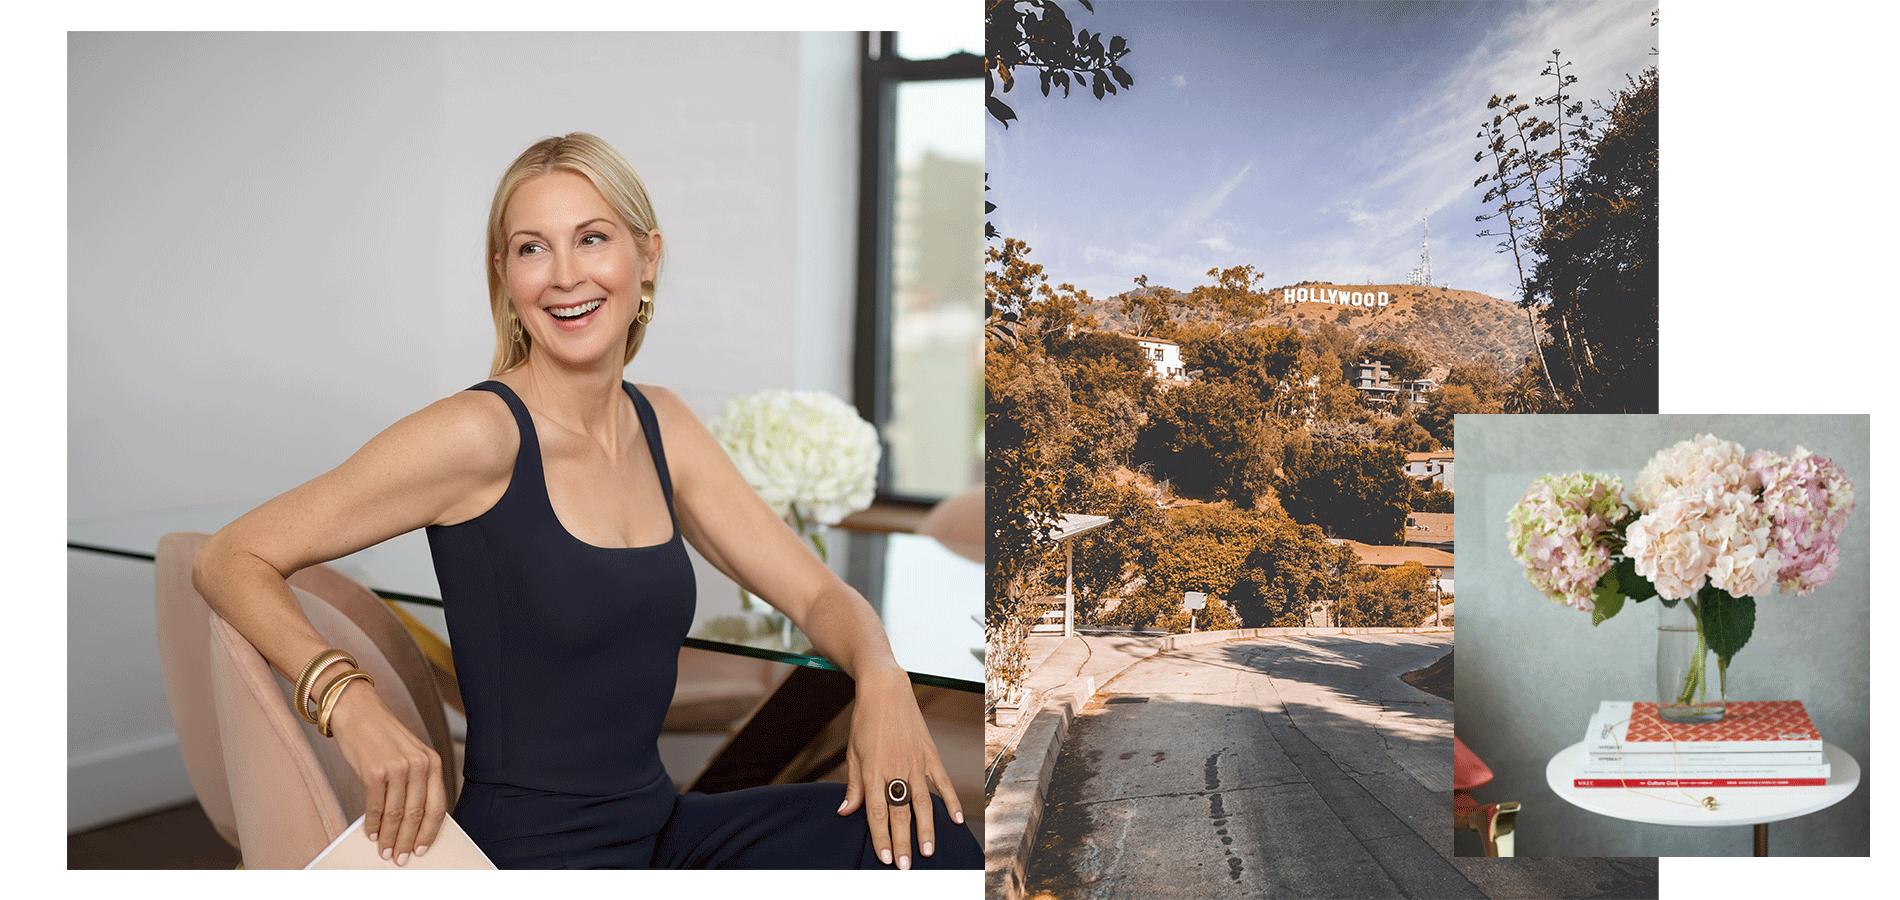 Kelly Rutherford SITA tank top